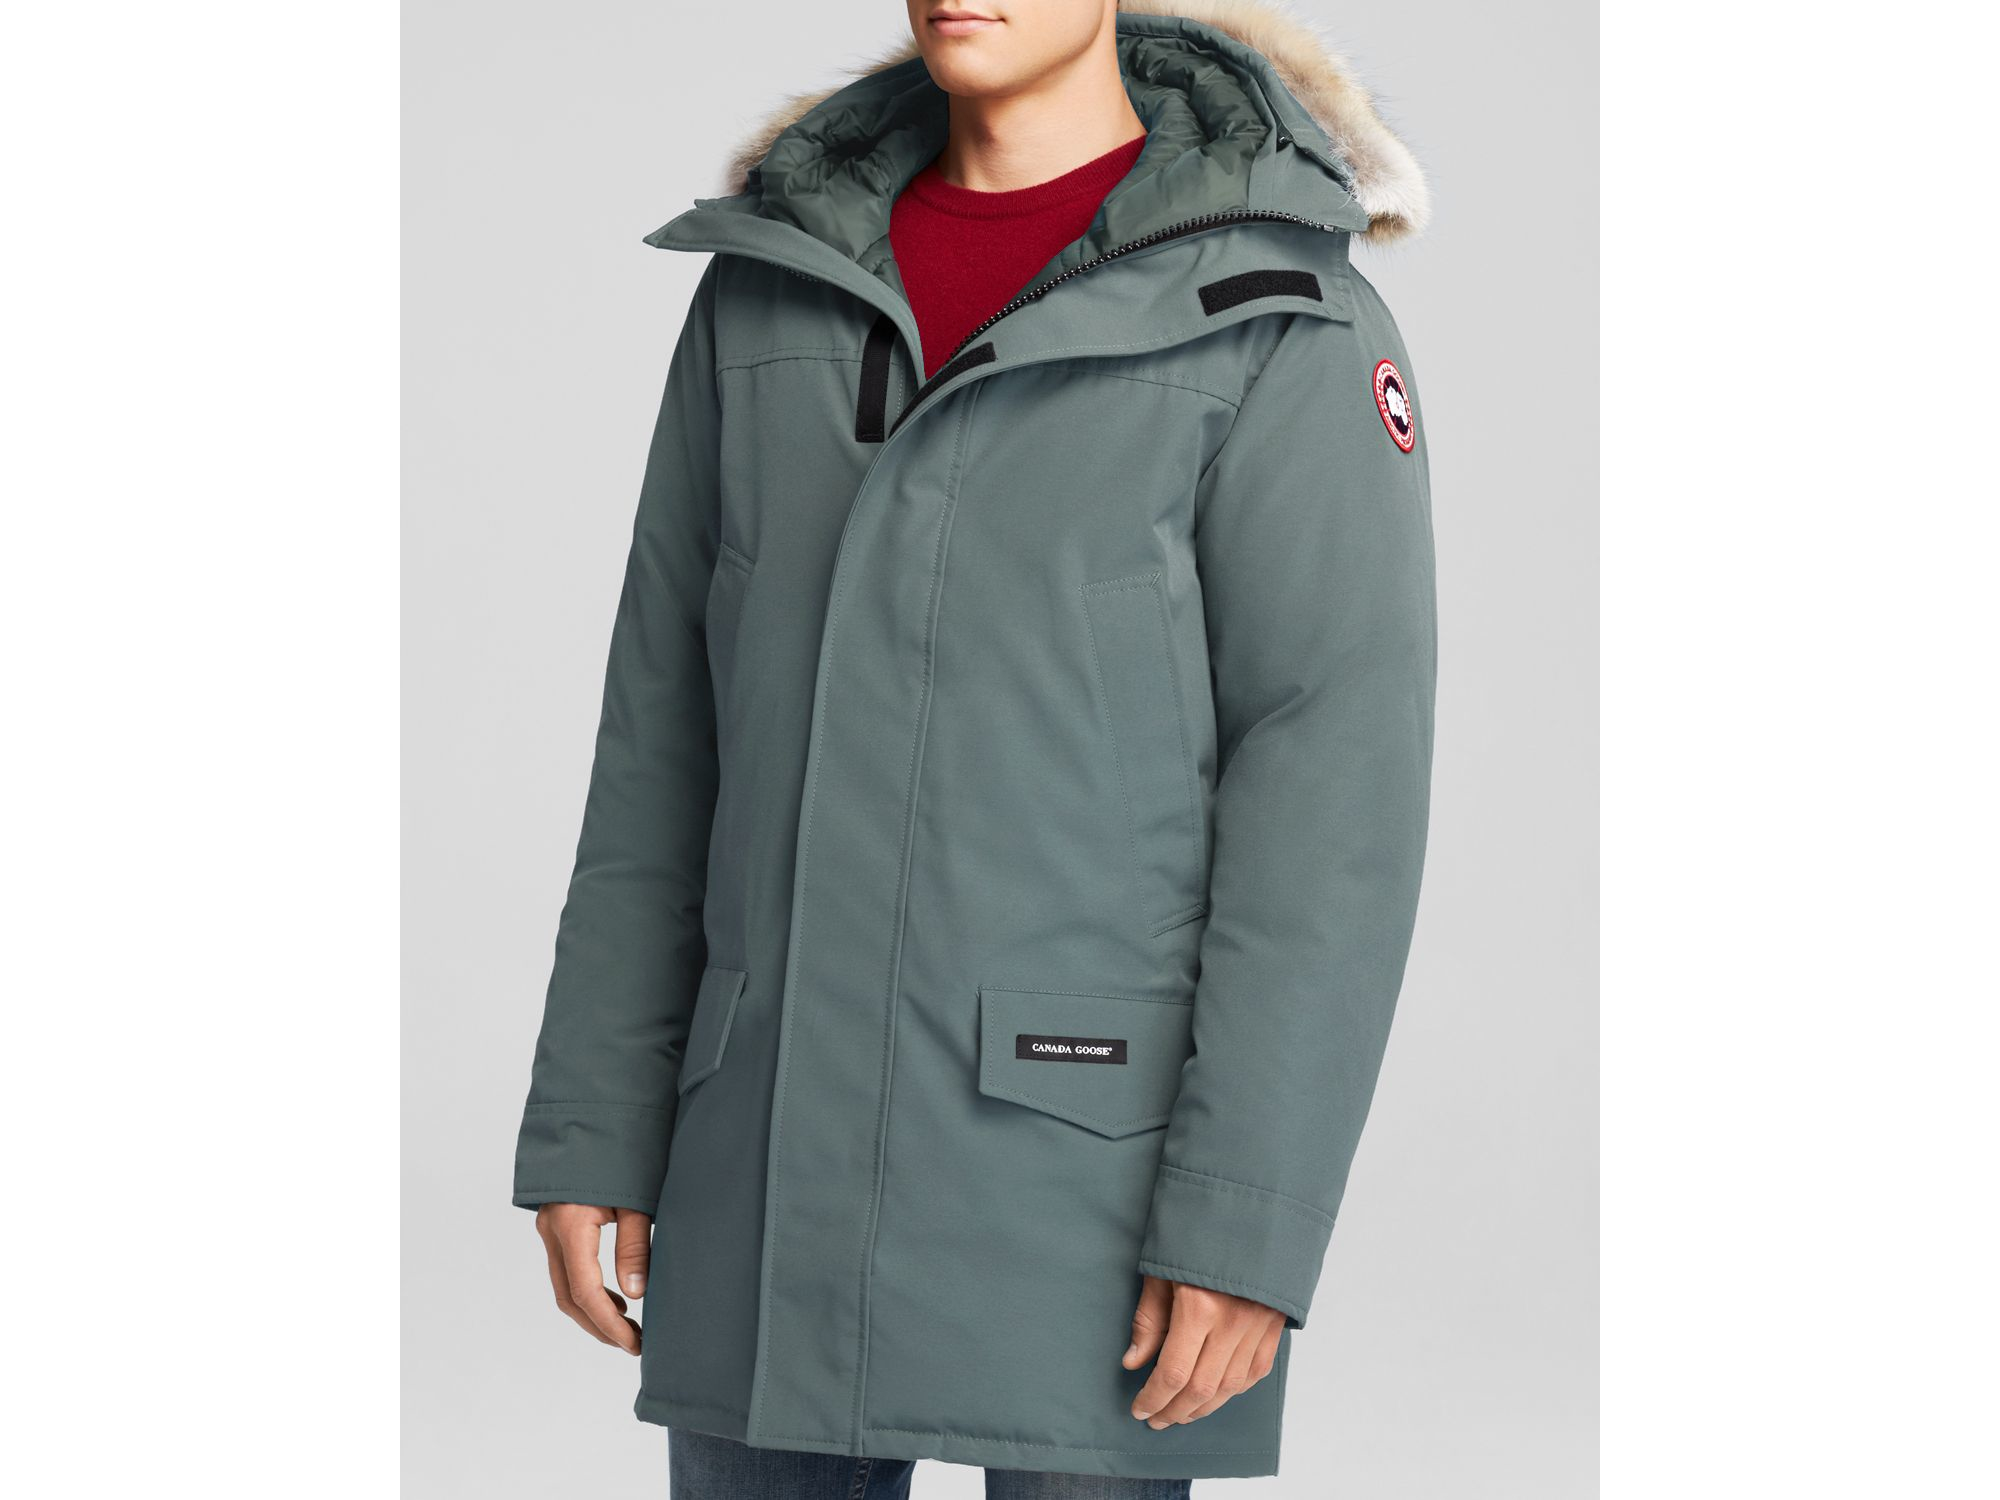 8f0eac315092 ... promo code for lyst canada goose langford parka with fur hood in gray  for men 2e2c6